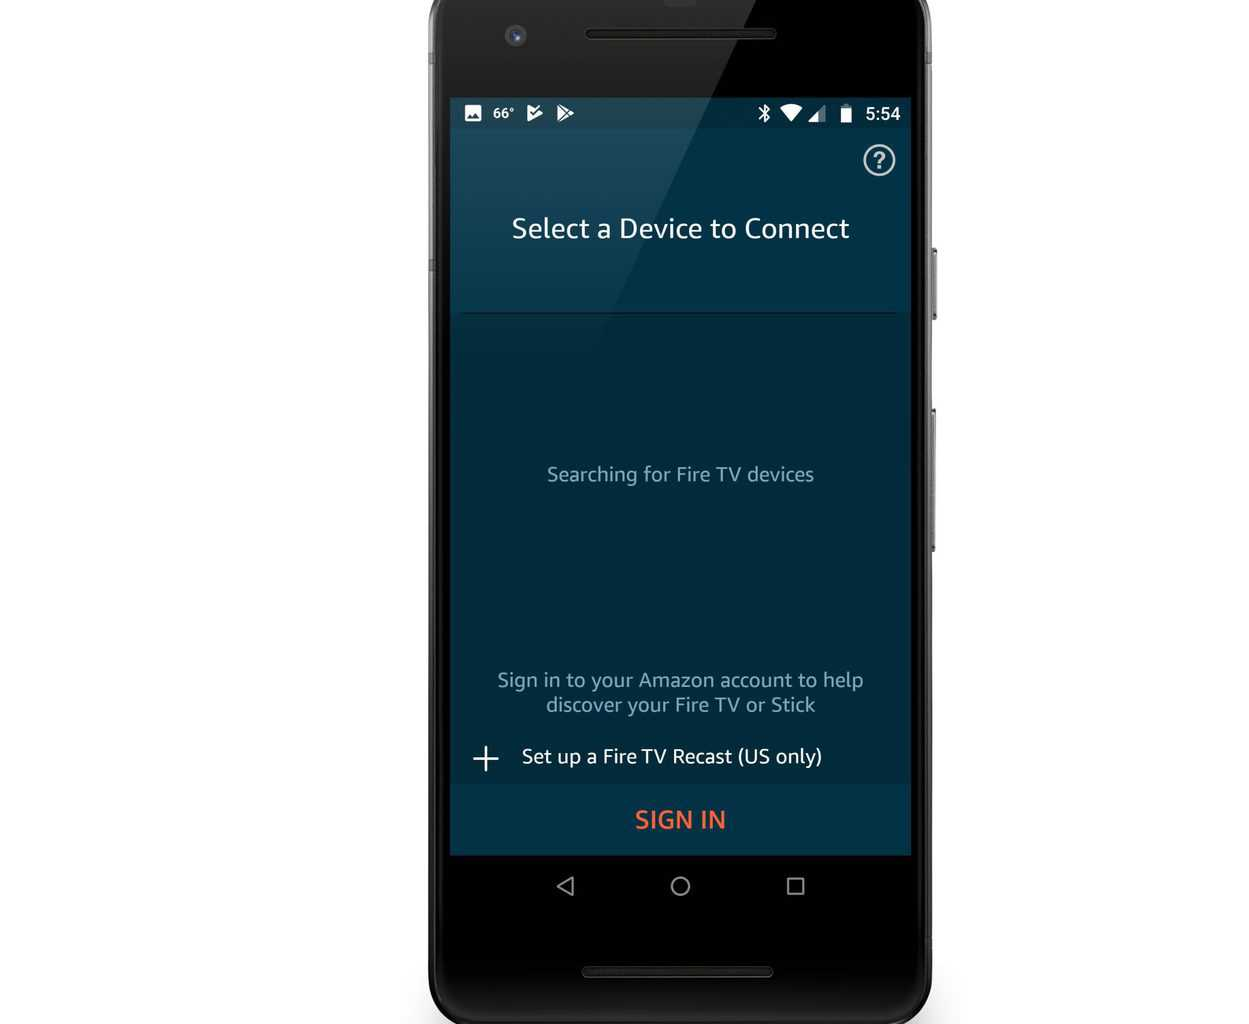 Shows device selection option on mobile device for firestick remote